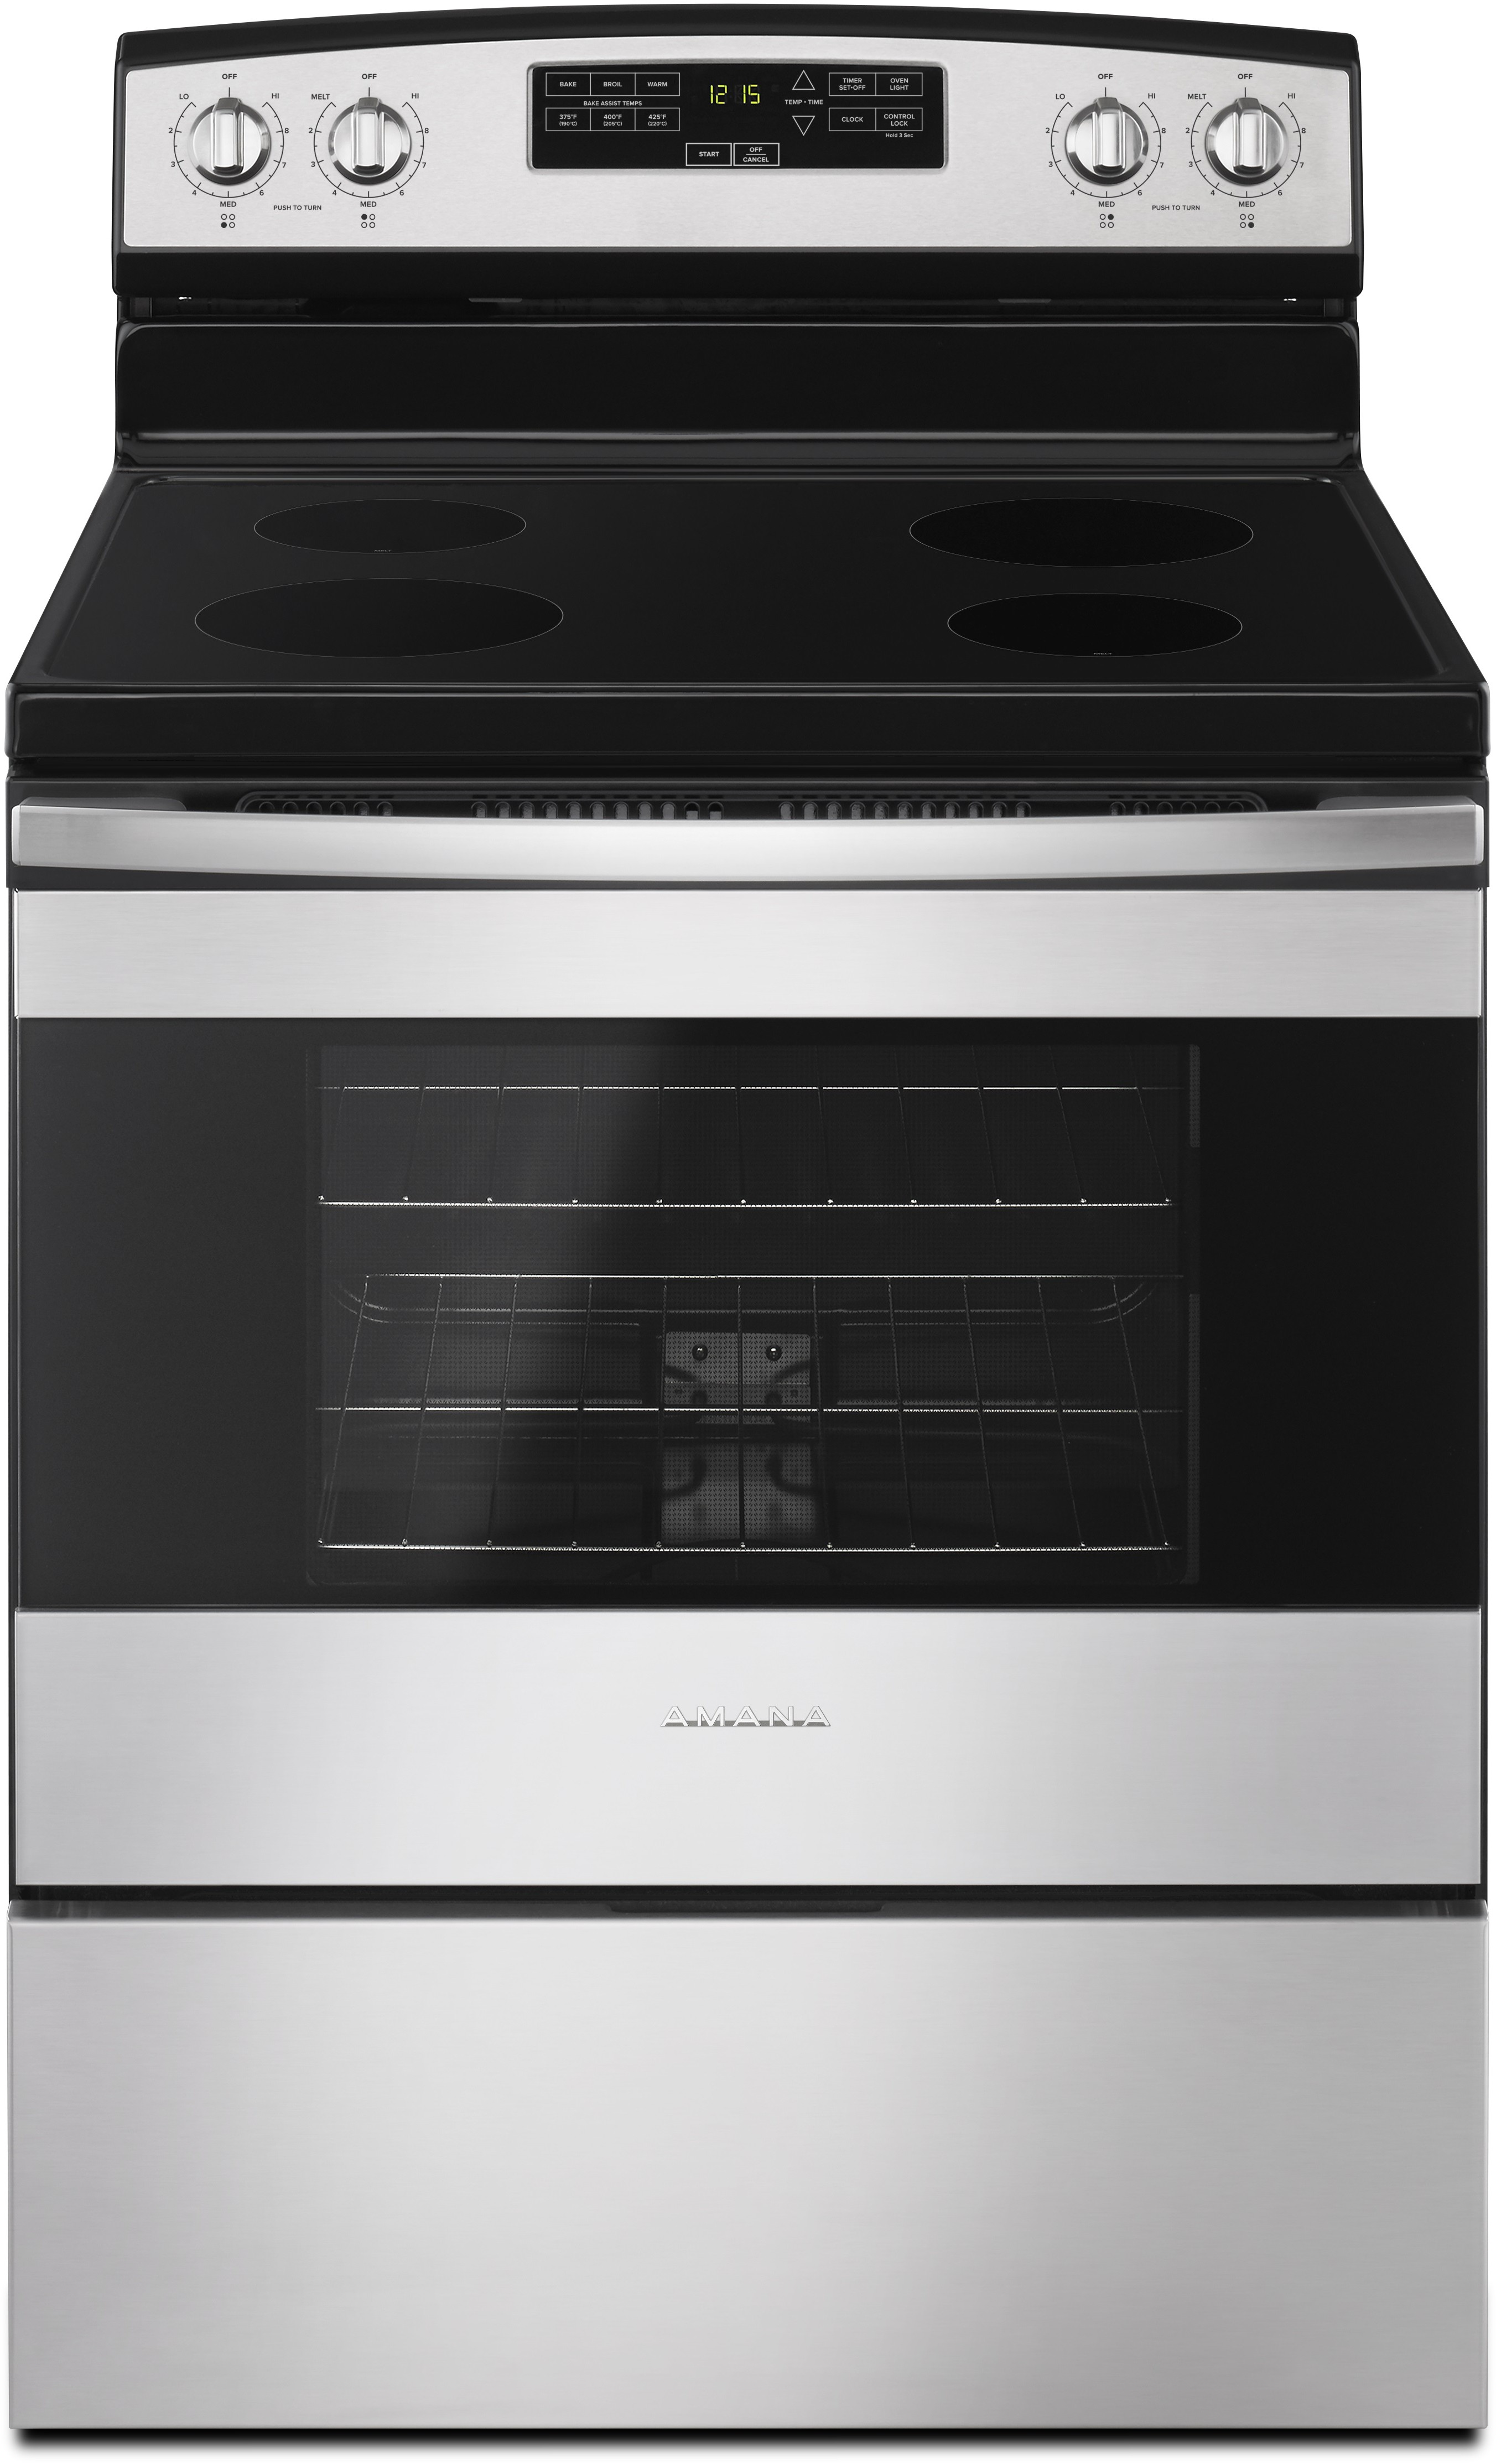 Amana Aer6303mfs 30 Inch Electric Range With 4 8 Cu Ft Capacity Radiant Heating Elements Temp Ure Cooking System Bake Ist Temps Warm Hold